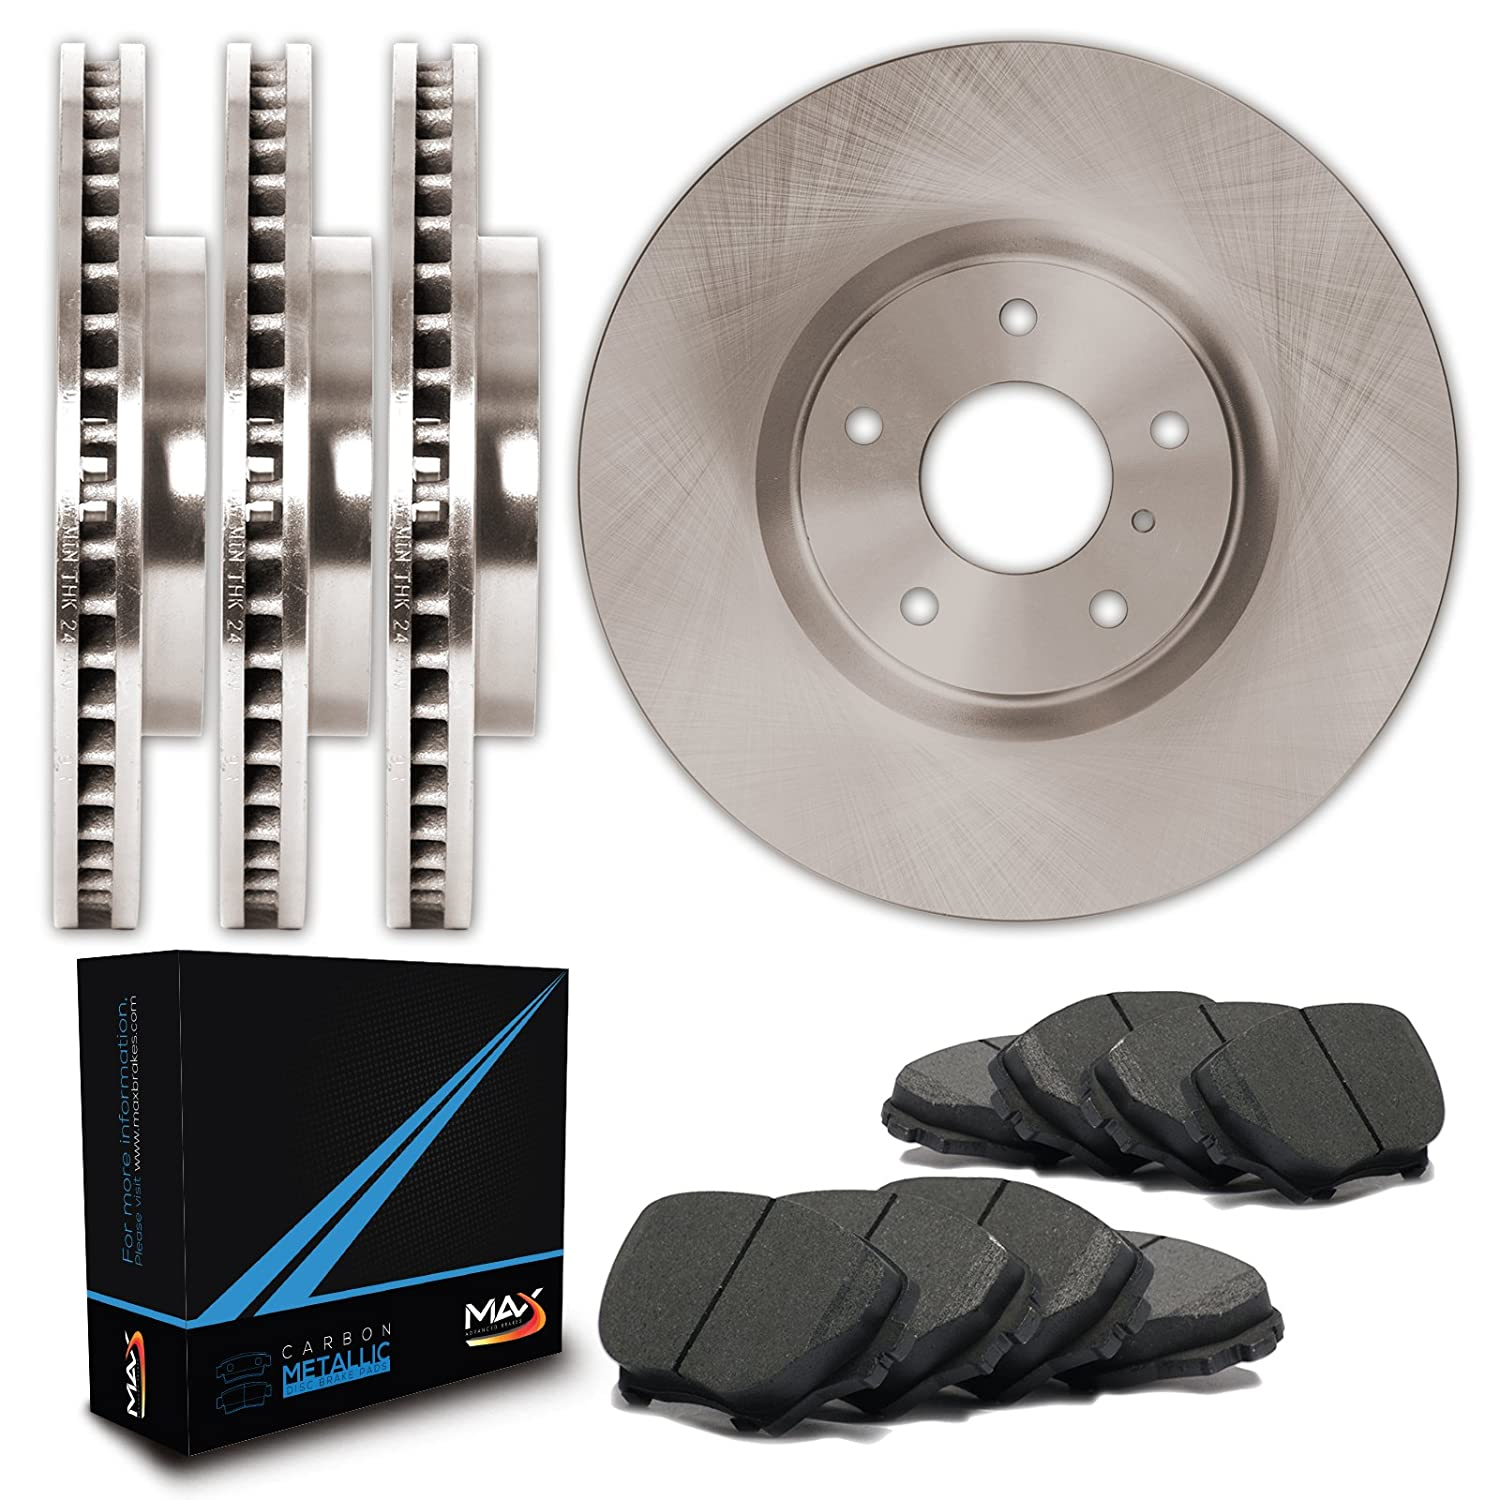 Max Brakes Front + Rear OE Series Rotors w/Metallic Pads Premium Brake Kit TA023943 | Fits: 2000 00 2001 01 VW Beetle 2.0L Non Turbo Models Max Advanced Brakes